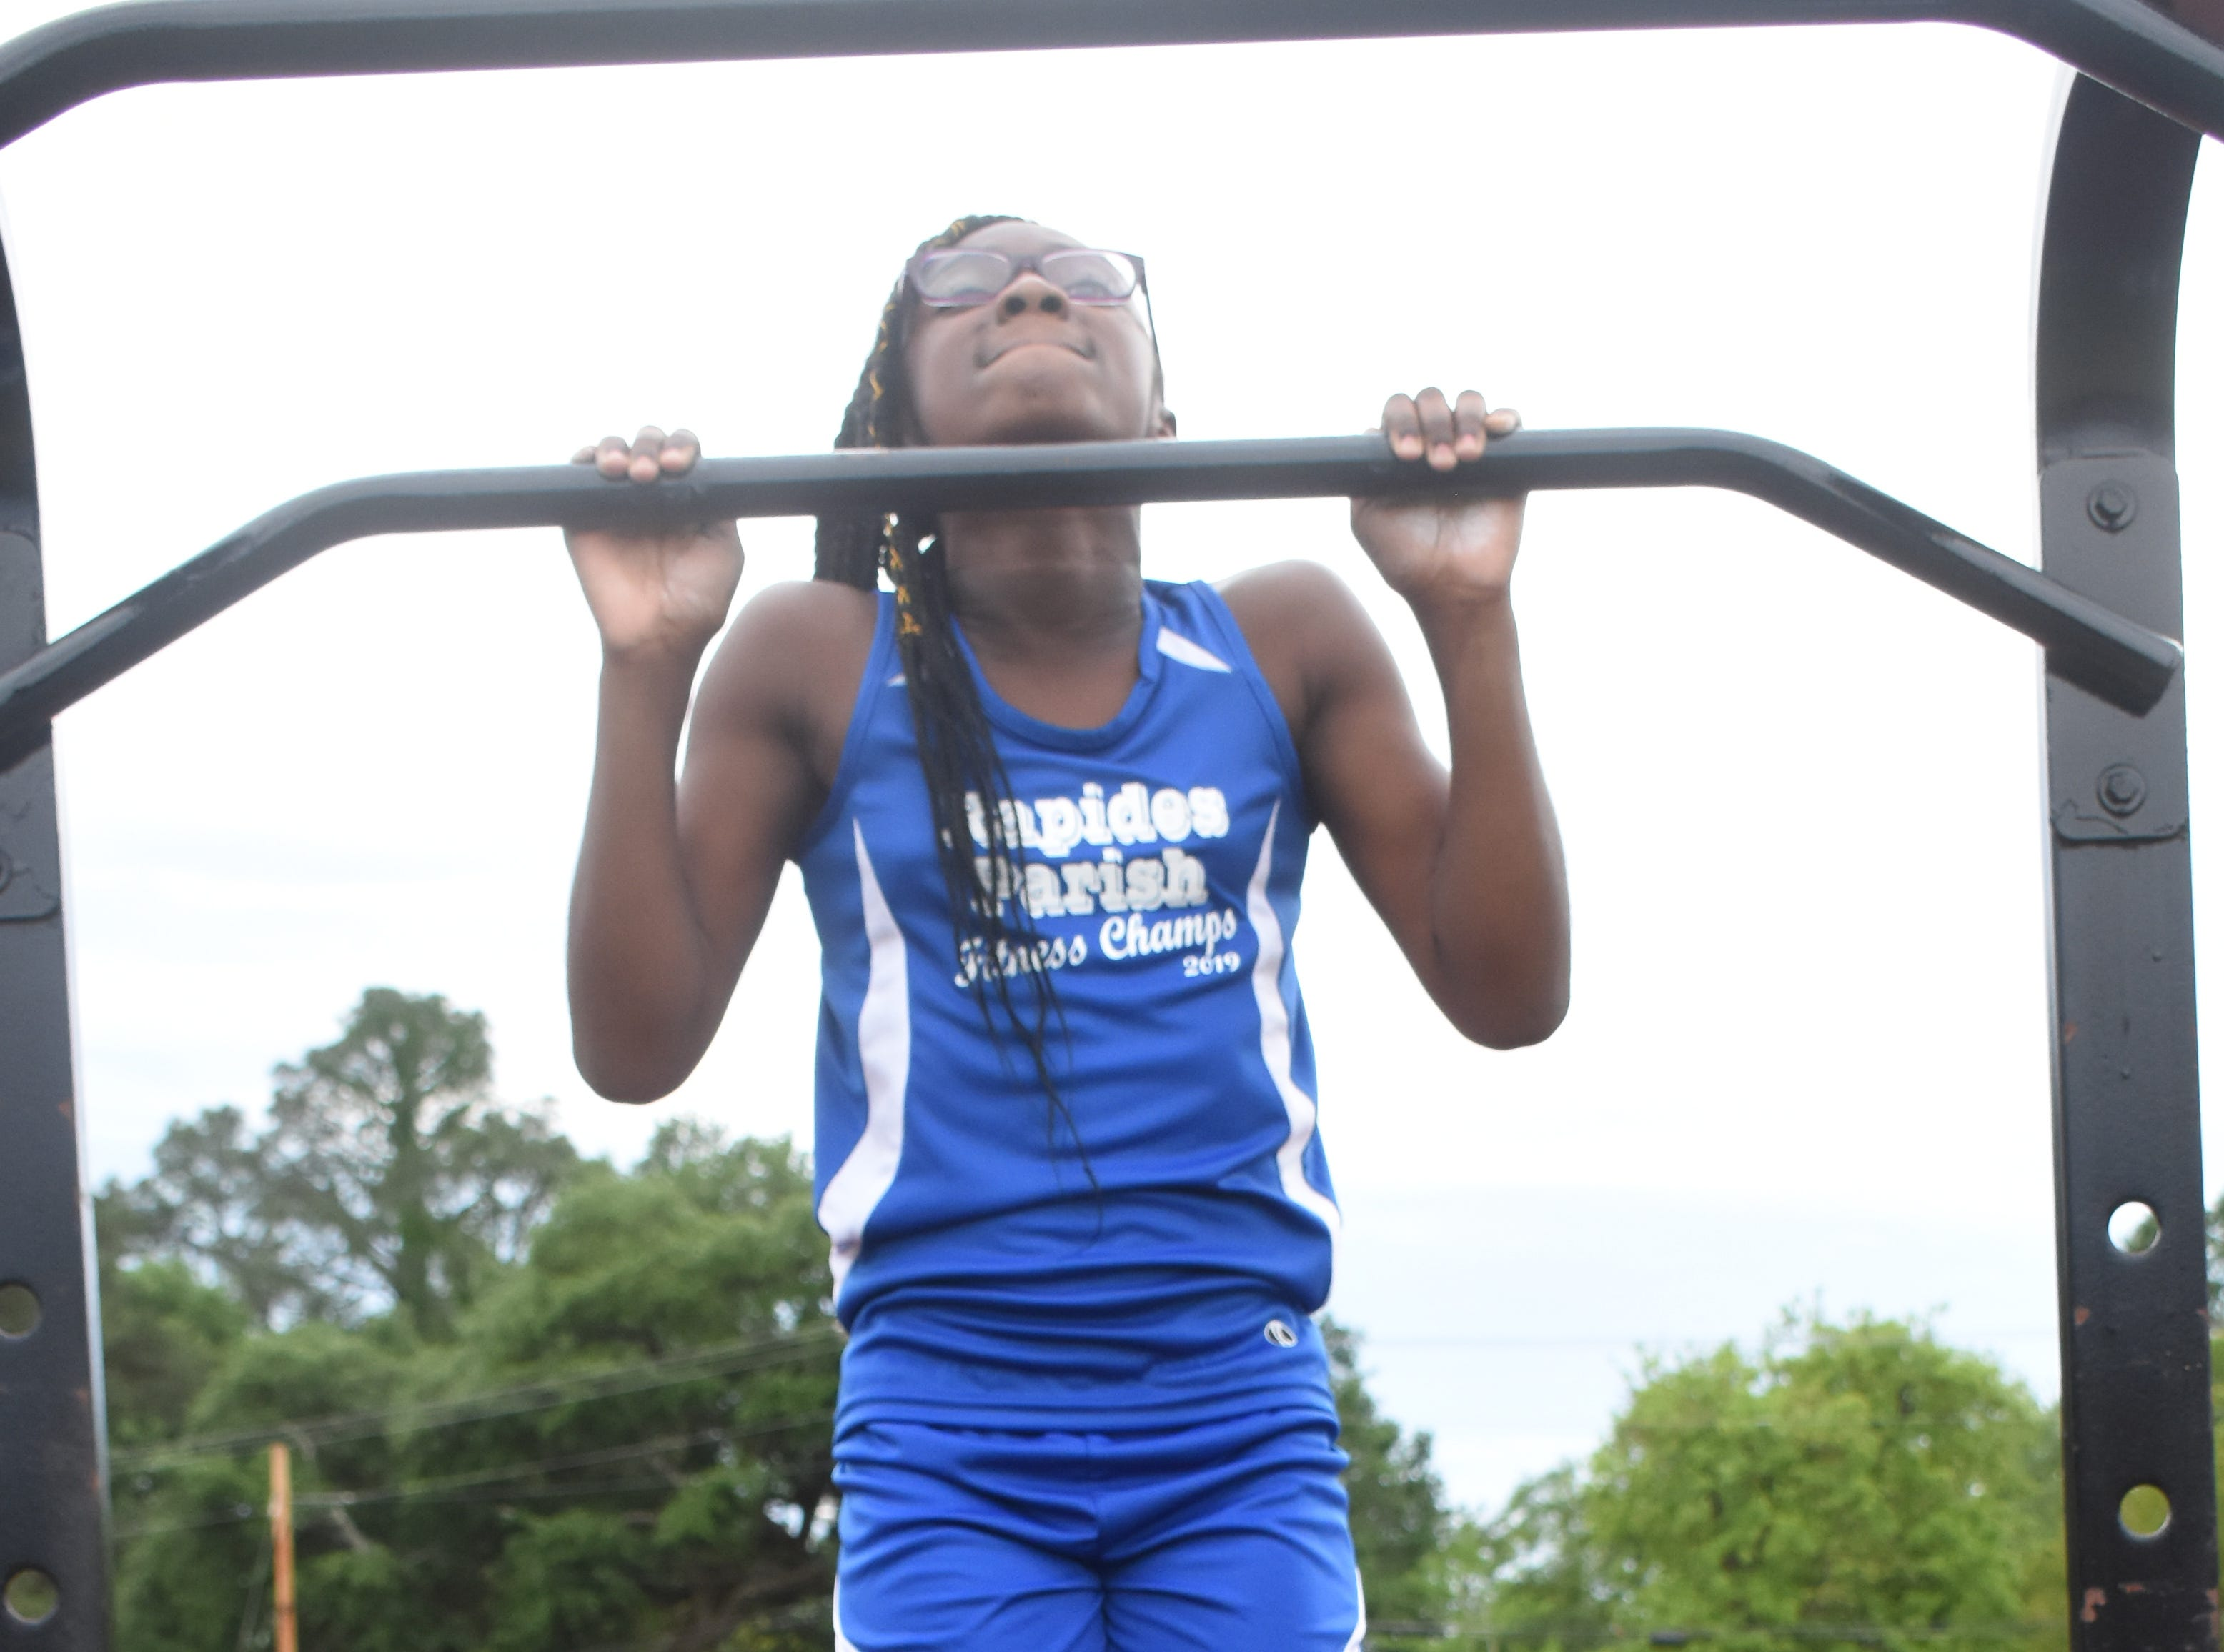 Amari Dupar of Cherokee Elementary School does pull-ups. Amari and five other Rapides Parish elementary school students will compete in the 2019 State Championship Fitness Meet to be held Saturday, April 27, 2019 at Alexandria Senior High School. The meet is part of the Governor's Council on Fitness and Sports. Students from throughout Louisiana will compete in seven events: 50-yard dash, sit and reach, pull-ups,  shuttle run, curl-ups (sit-ups), standing long jump, and the 600-yard run. For the past three years, the Rapides Parish Fitness Team has placed first at the meet. Dean was the highest scoring boy last year and won the title of 2018 Mr. Fitness for the State of Louisiana. The meet will be from 10 a.m. to 2 p.m.